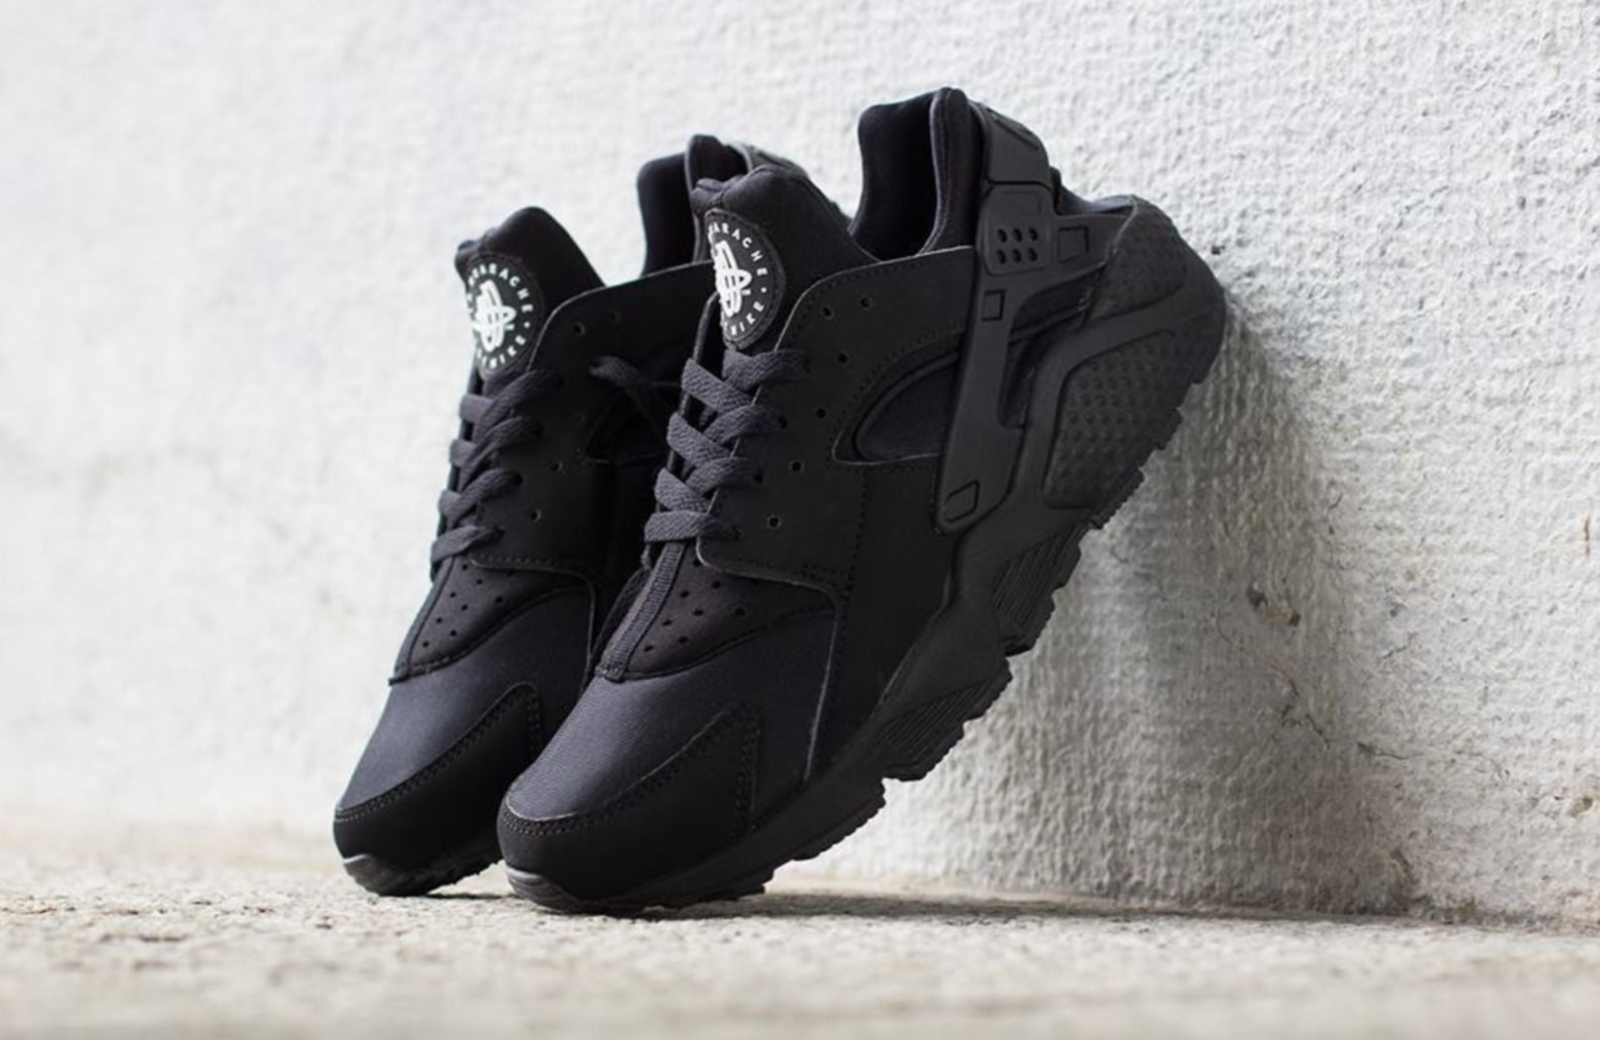 competitive price e6cf7 0c980 NEW NIKE AIR HUARACHE TRIPLE BLACK BLACKOUT ALL BLACK sold by cleatssale4A